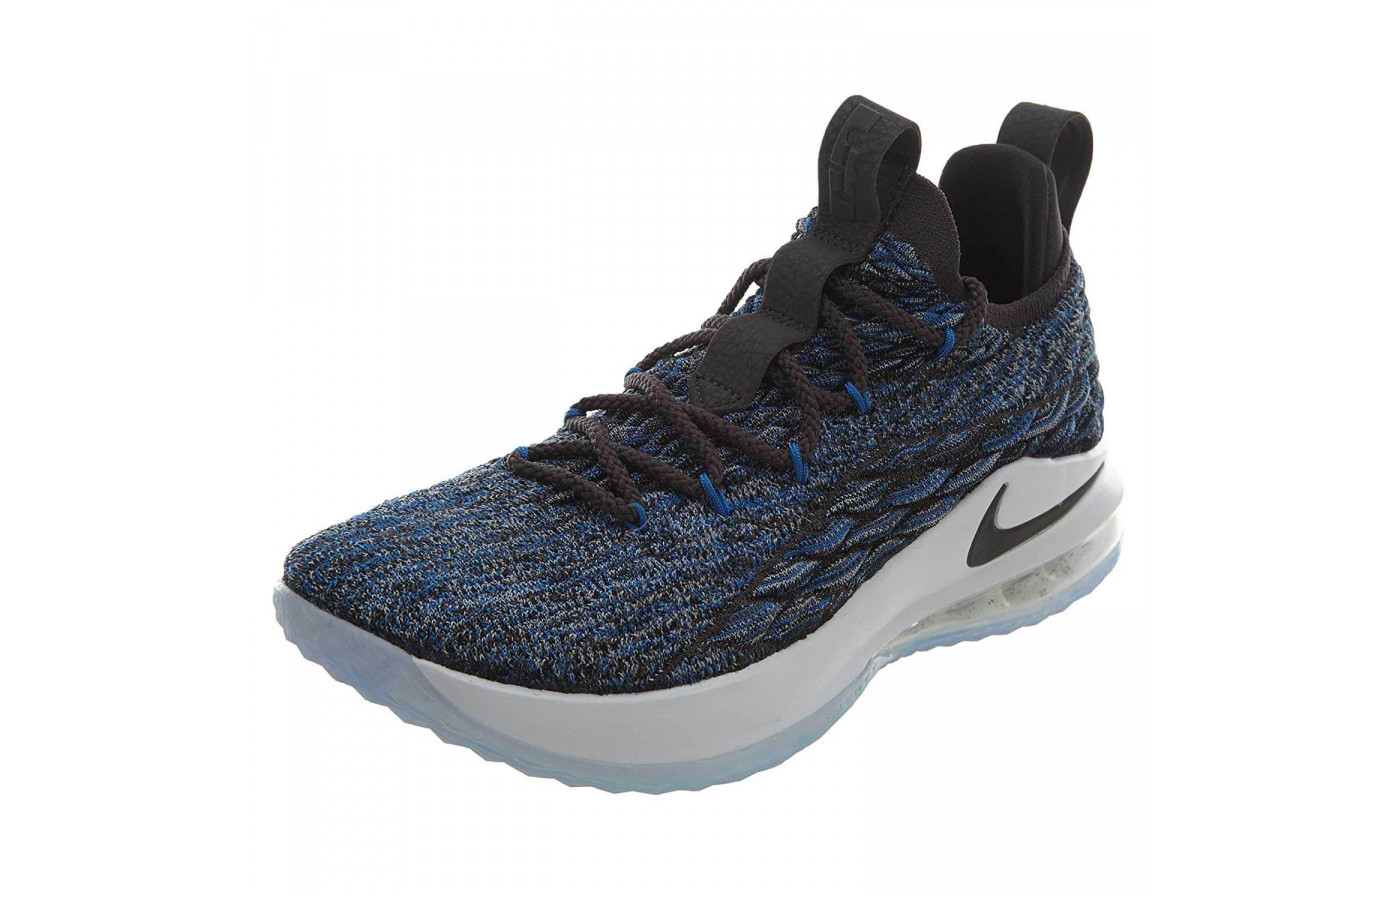 53e381c87cd2 The Lebron 15 Low is constructed with a Battleknit upper material ...